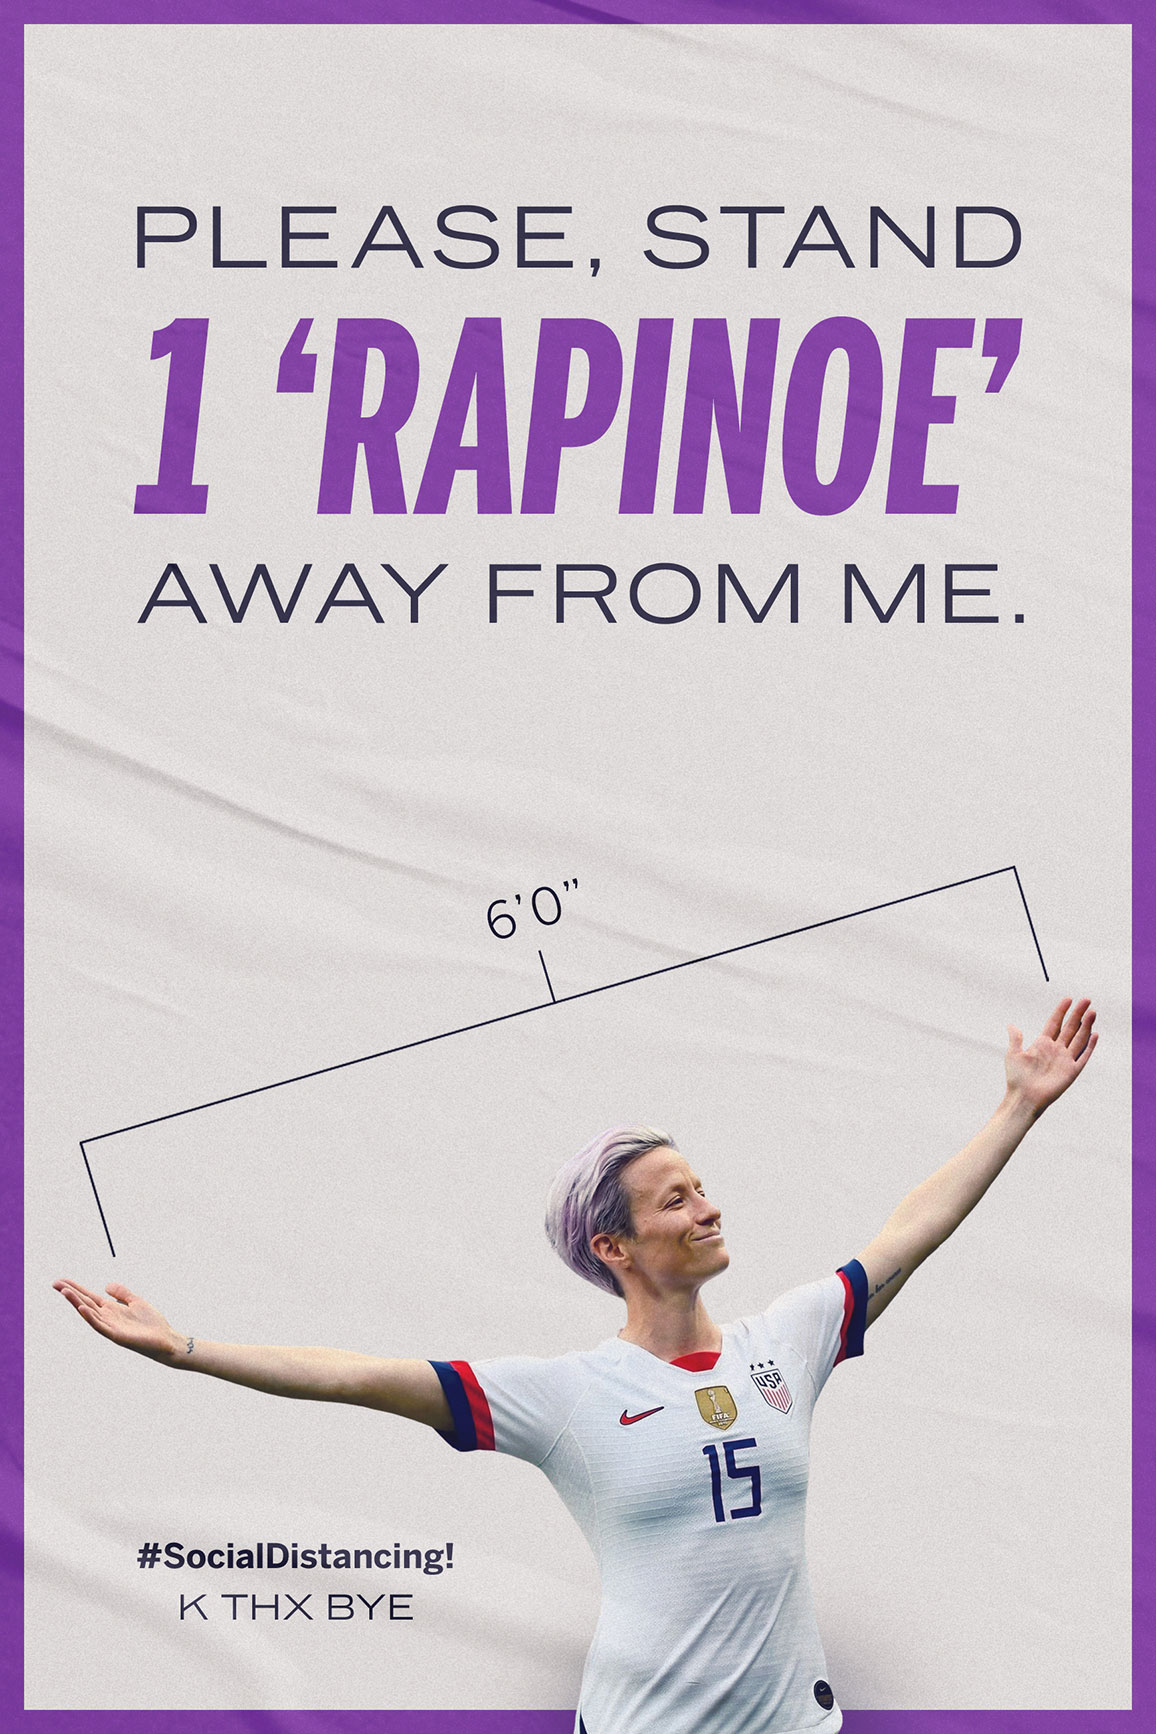 Please Stand 1 'Rapinoe' Away From Me.